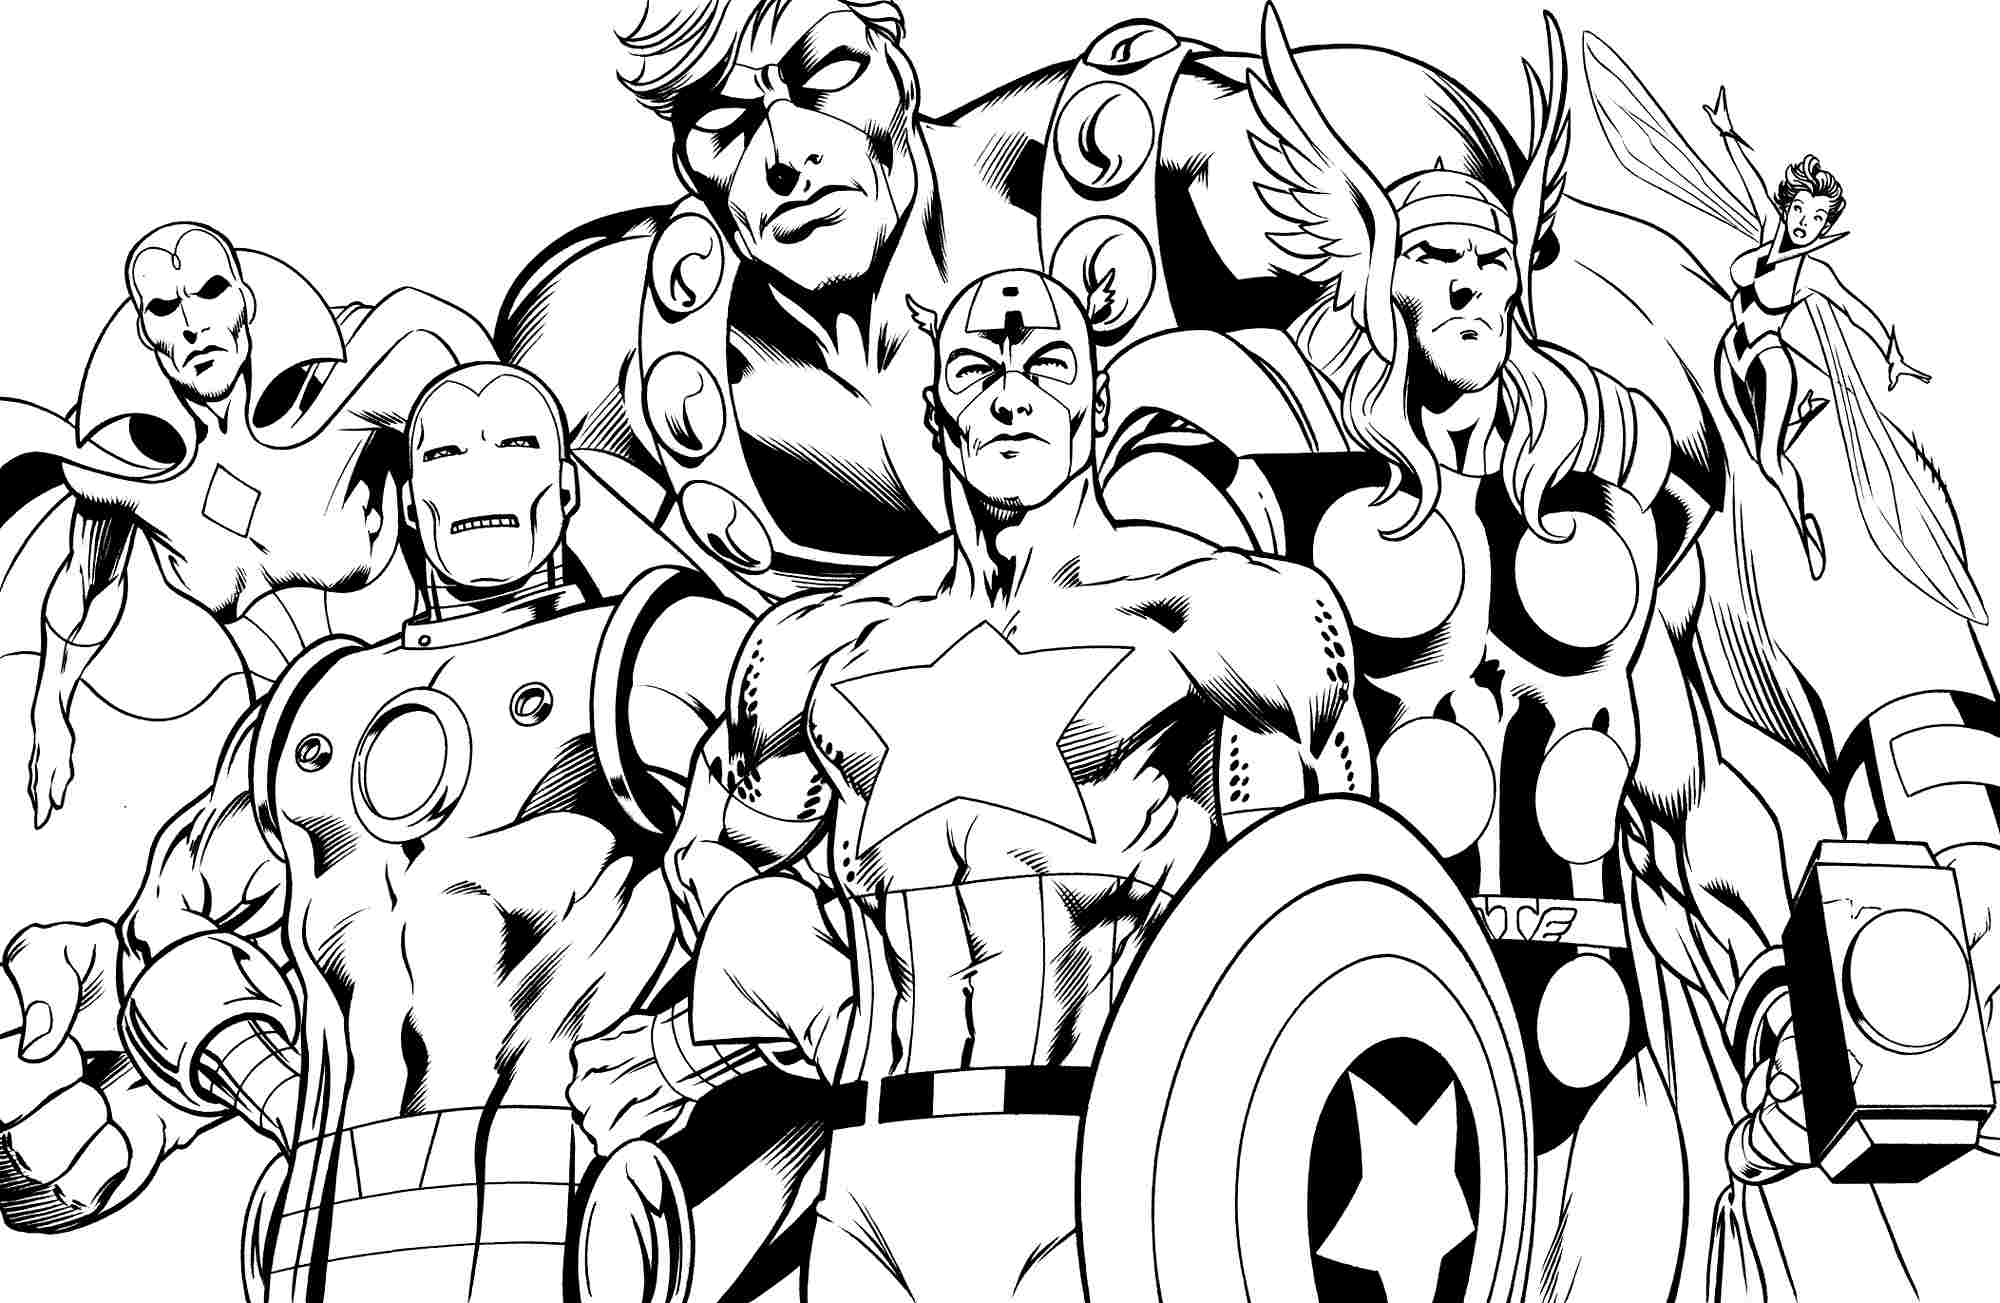 superhero coloring pages superhero coloring pages to download and print for free superhero pages coloring